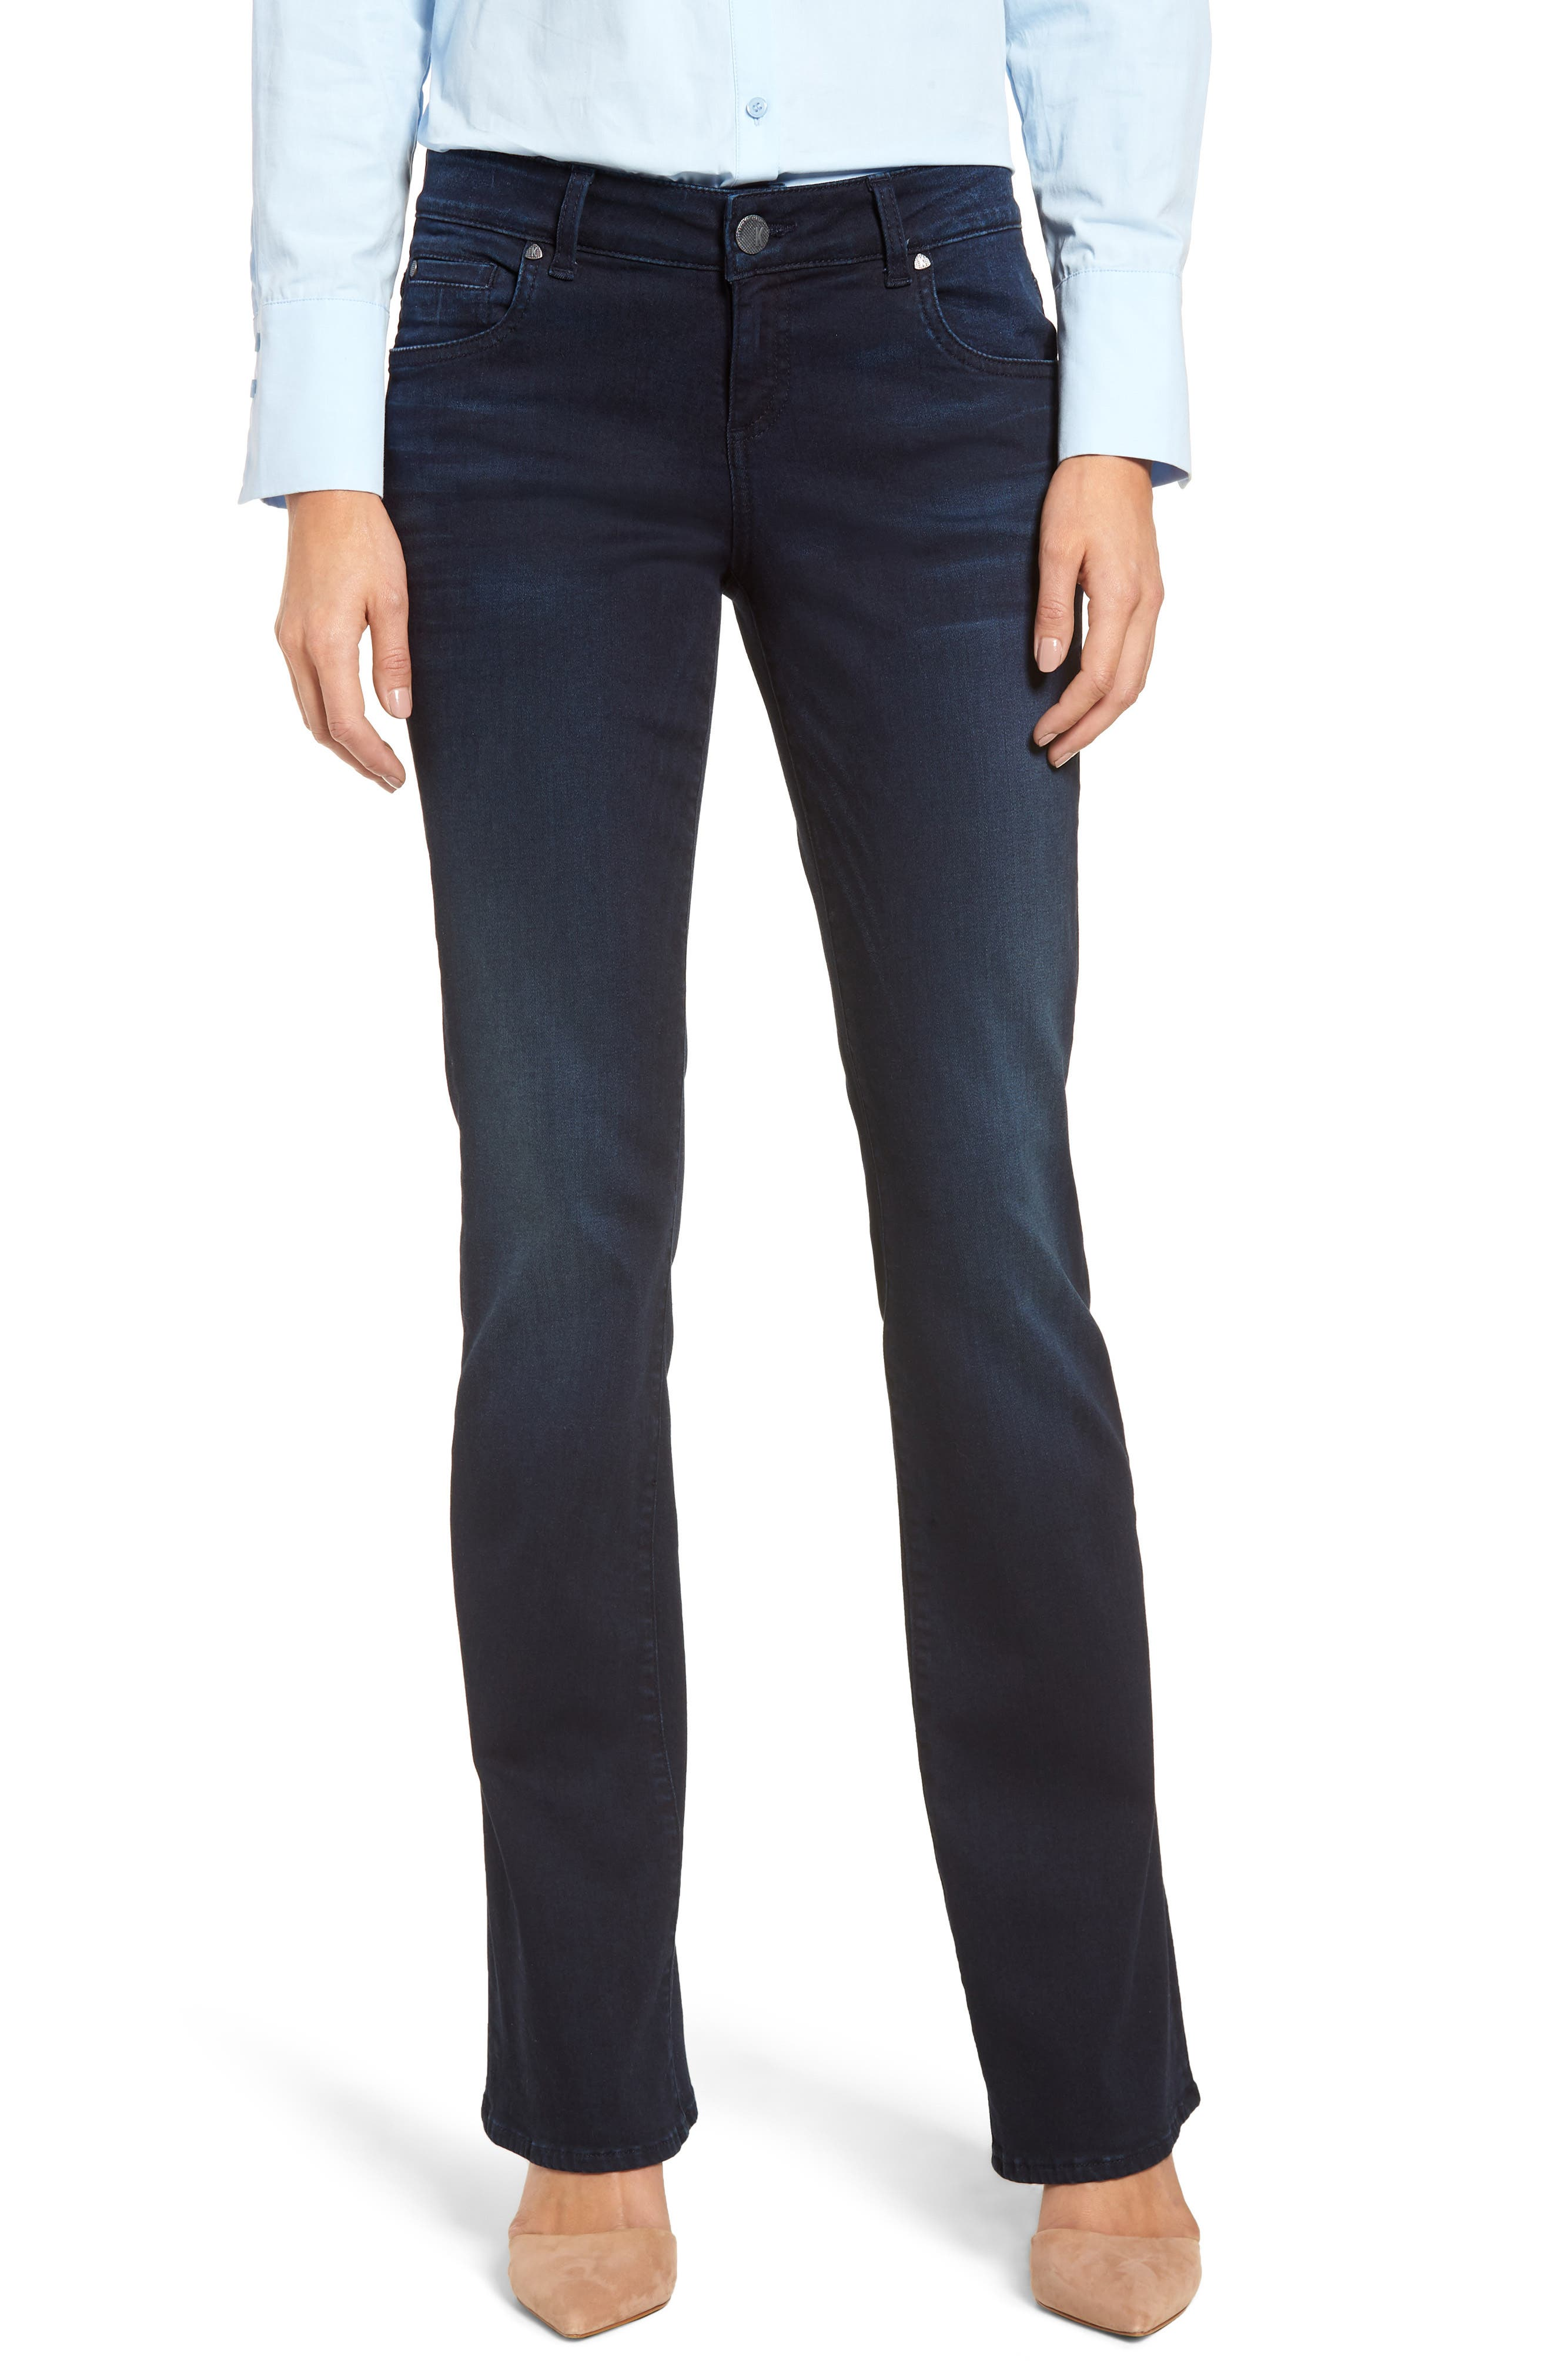 KUT FROM THE KLOTH, Natalie Stretch Bootleg Jeans, Main thumbnail 1, color, LIBERATING